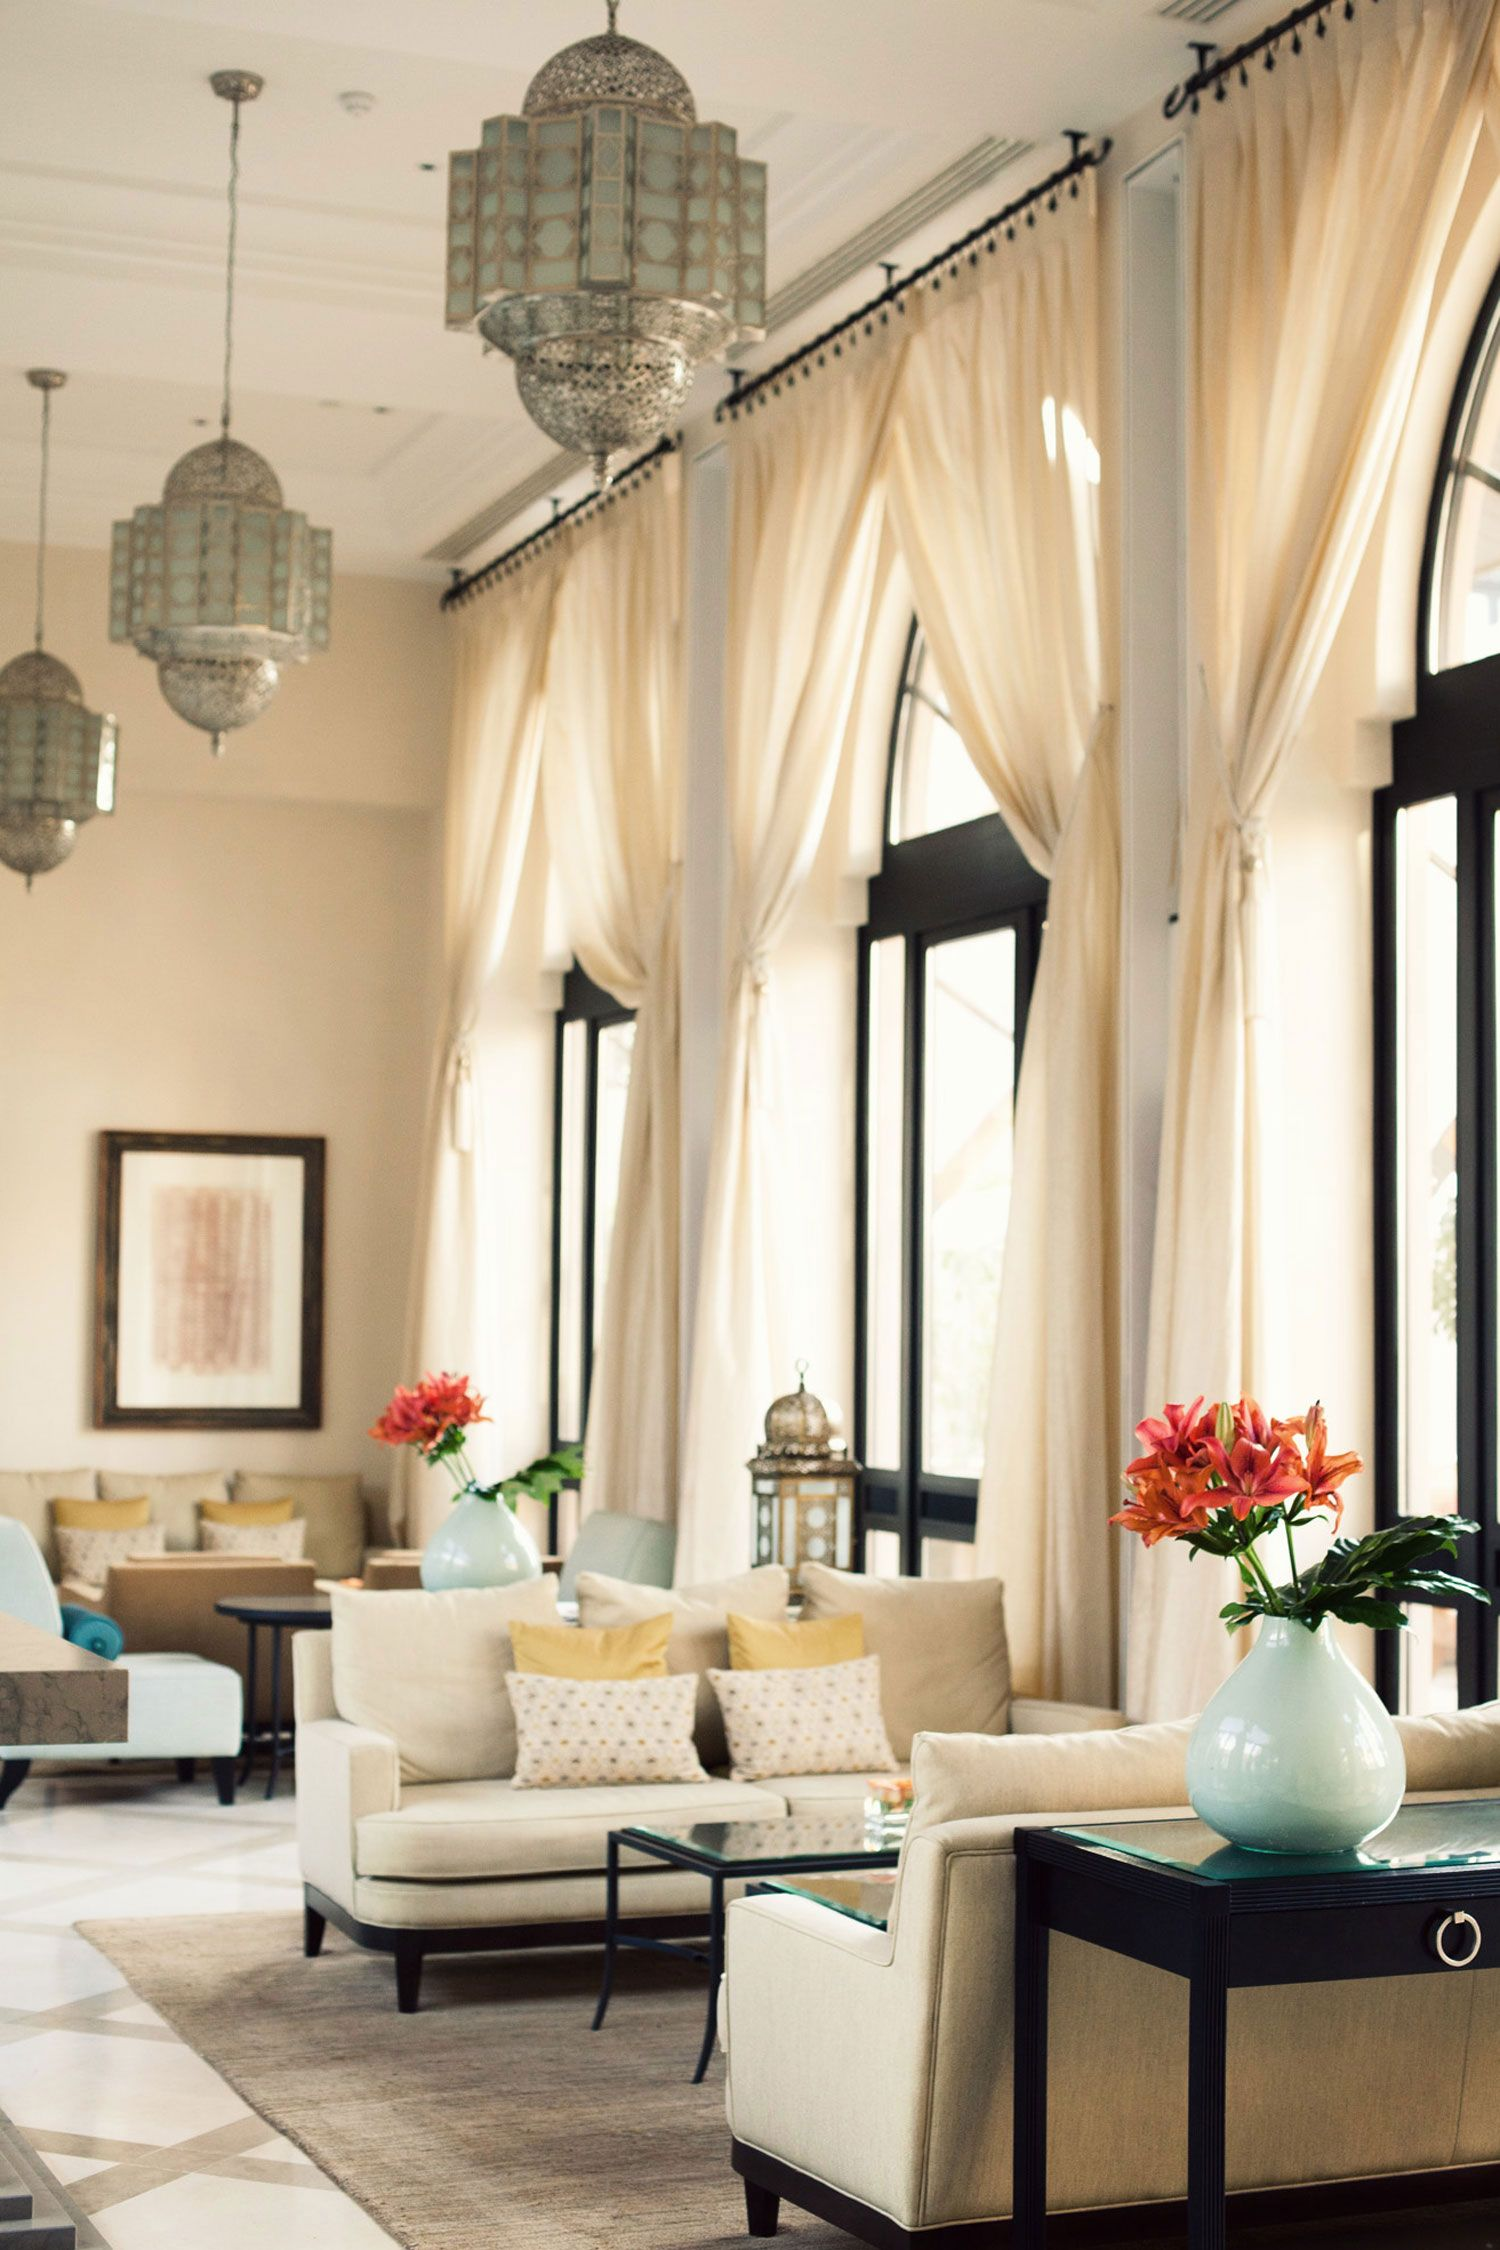 High Ceiling Curtains very colonial feeling with the paladium windows, dark wood, high